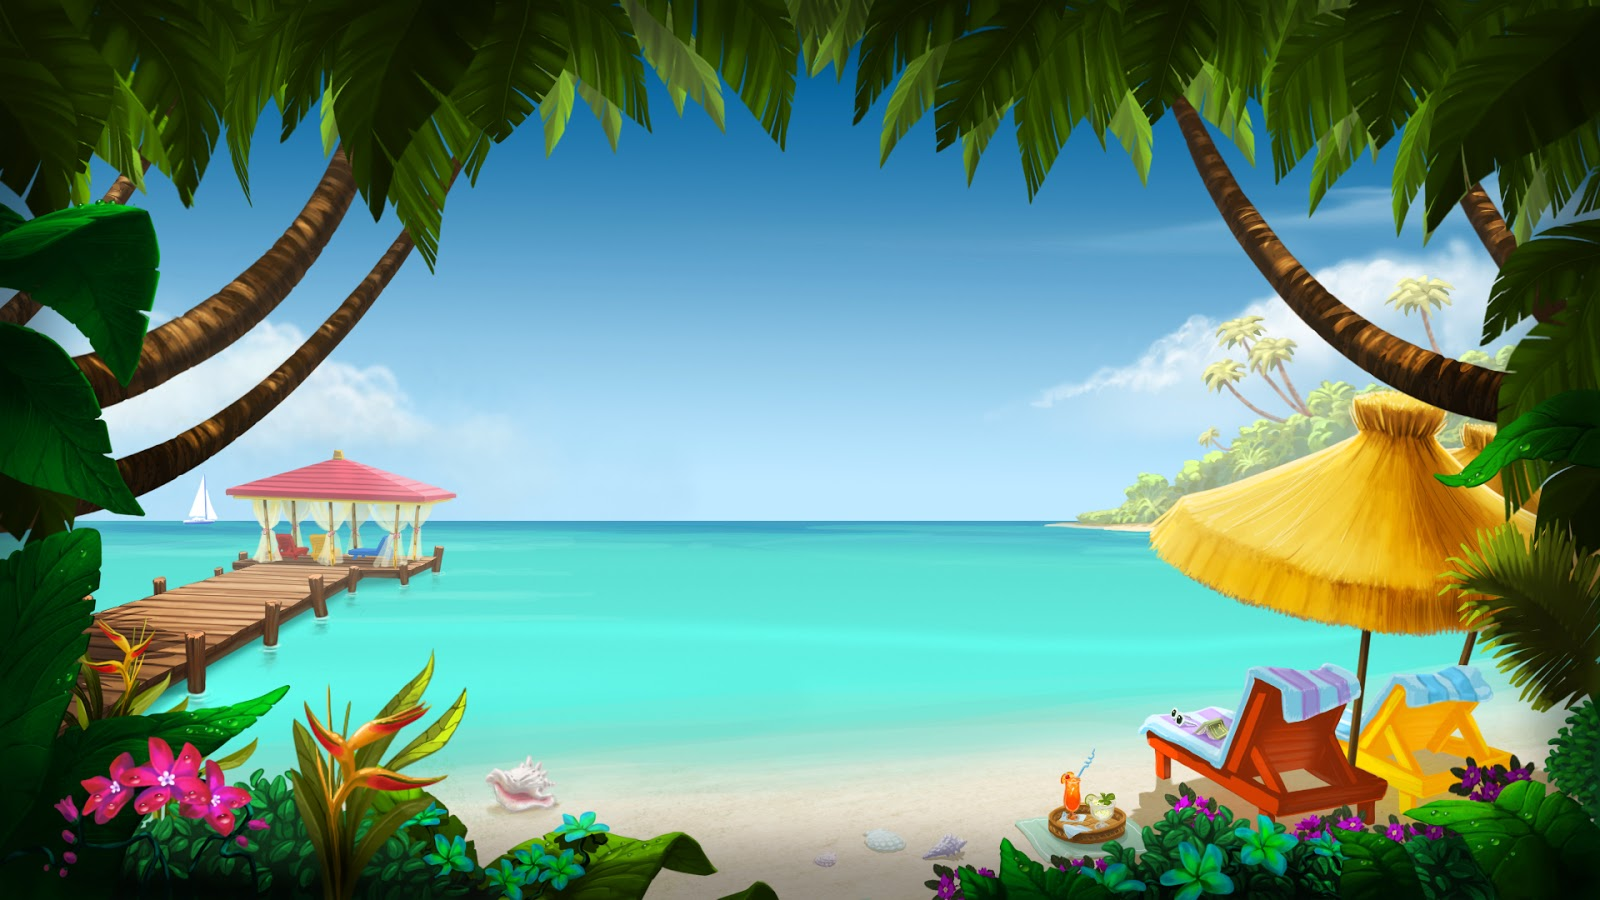 Hd Tropical Island Beach Paradise Wallpapers And Backgrounds: Justin's Art